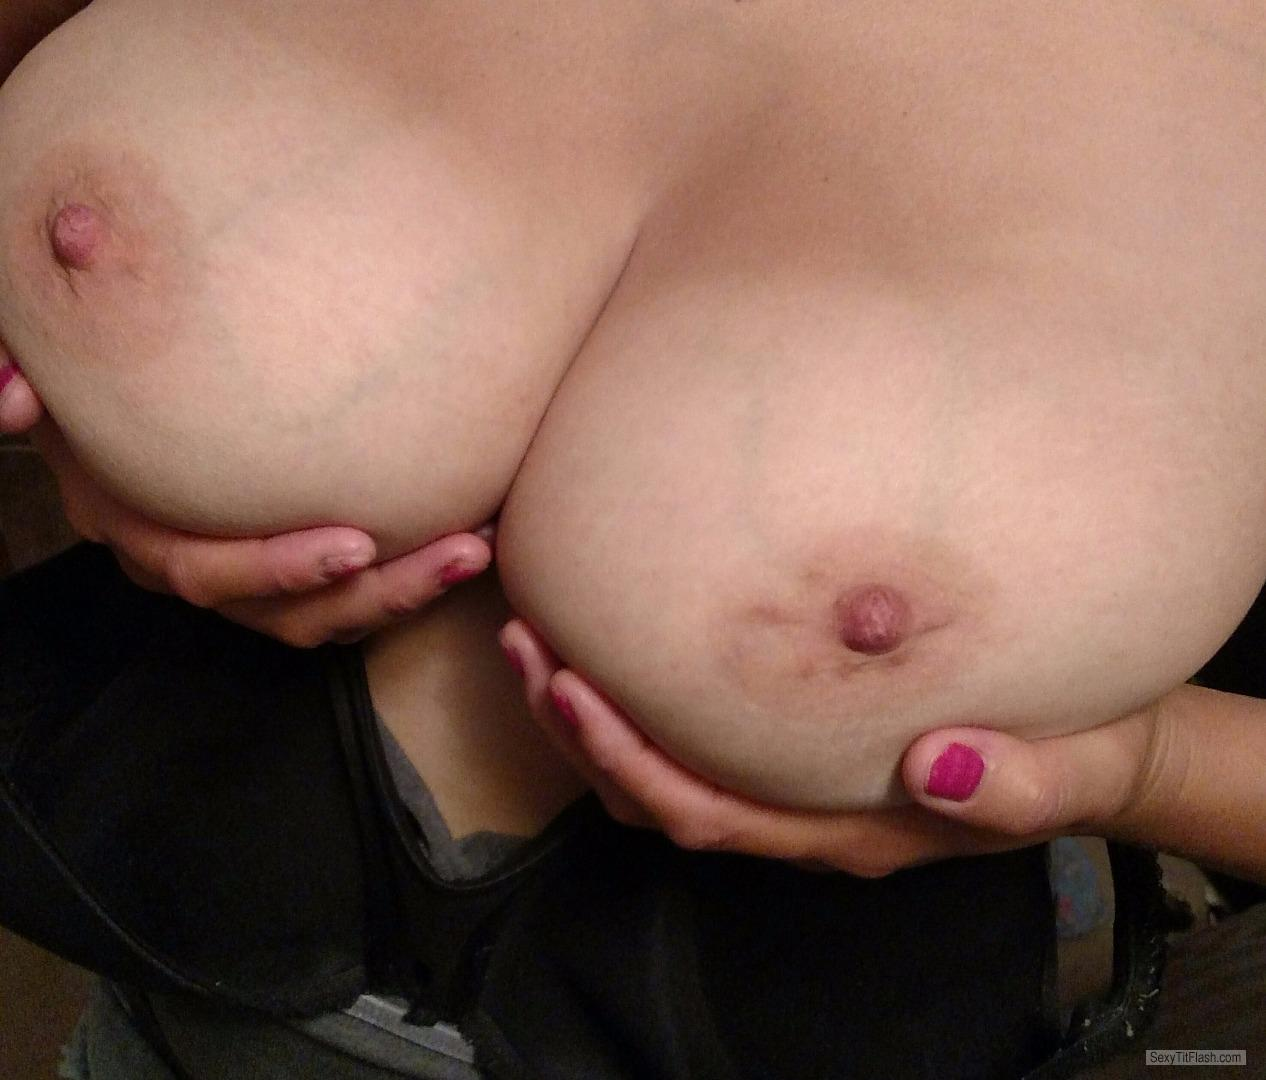 Tit Flash: My Very Big Tits - Sexy from United Kingdom